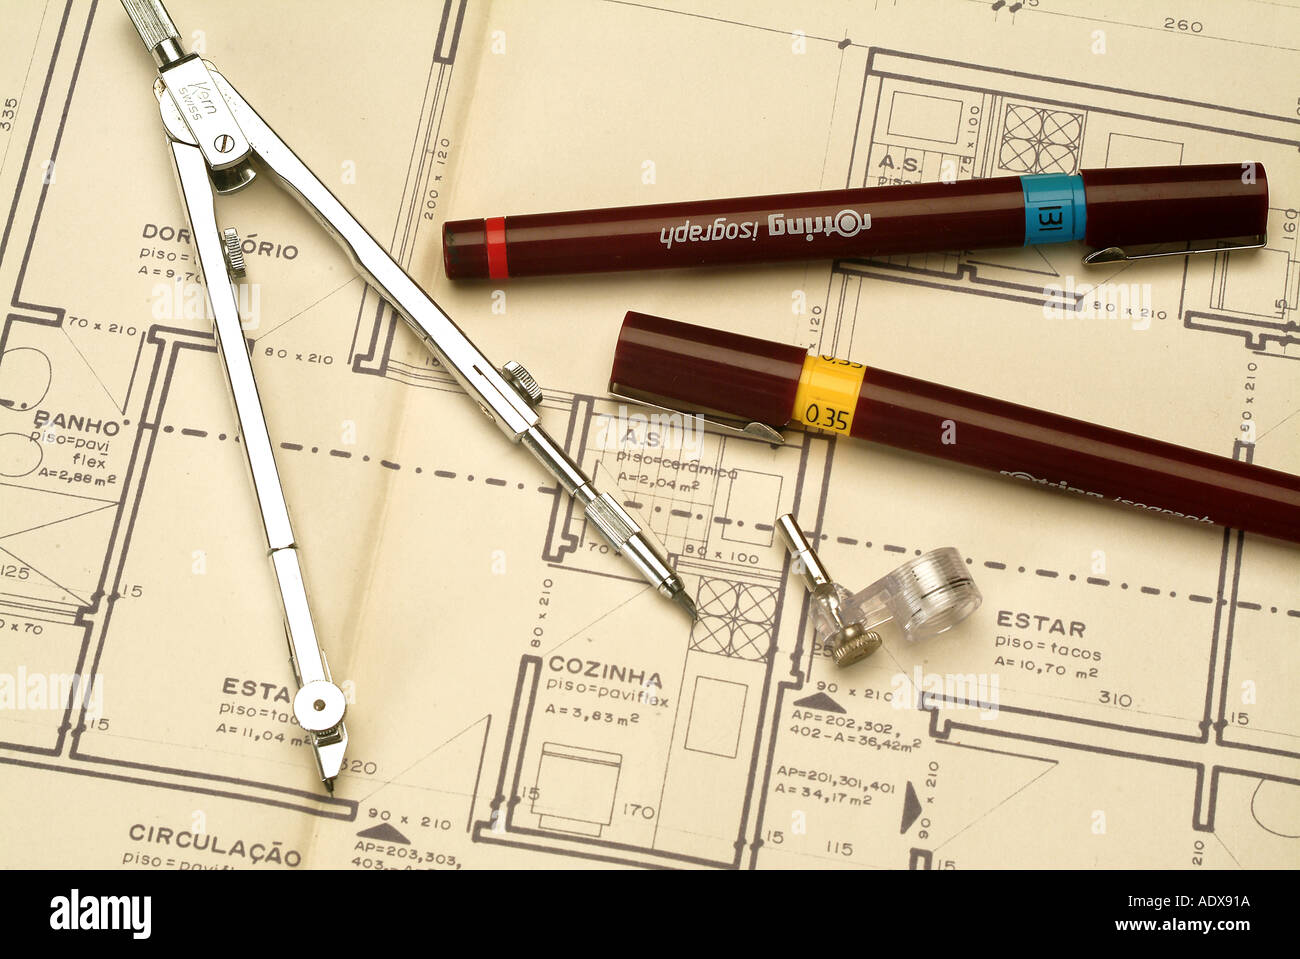 Architecture ink pens concept conceptual compass blueprint diagram architecture ink pens concept conceptual compass blueprint diagram project scheme ruler architecture malvernweather Image collections